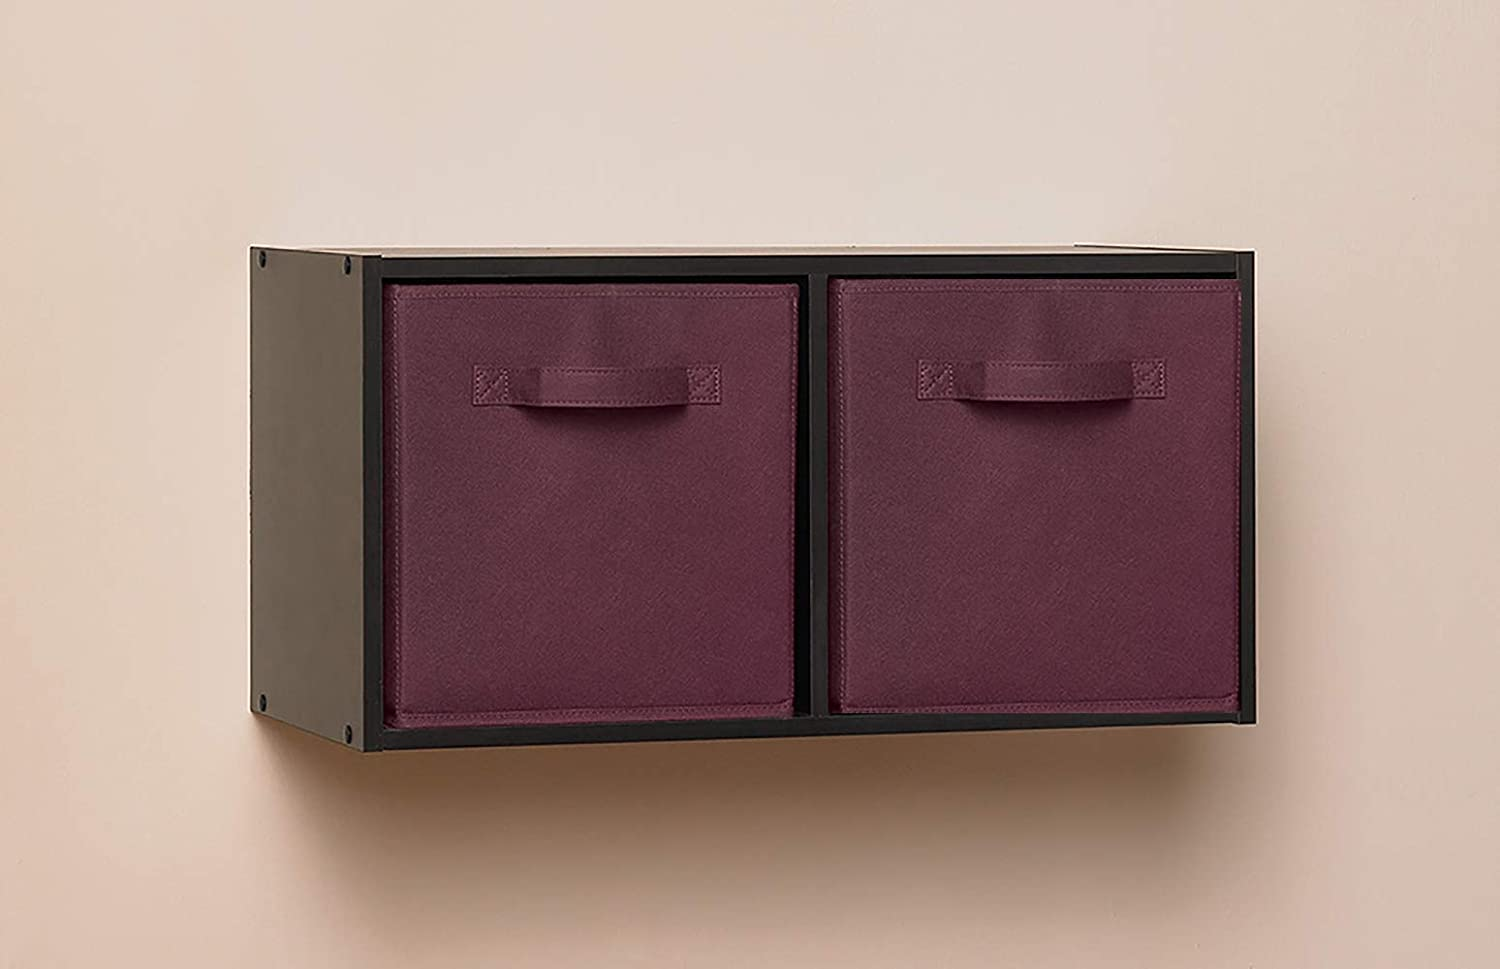 ClosetMaid 1468 Cubeicals Fabric Drawers Pink 2-Pack